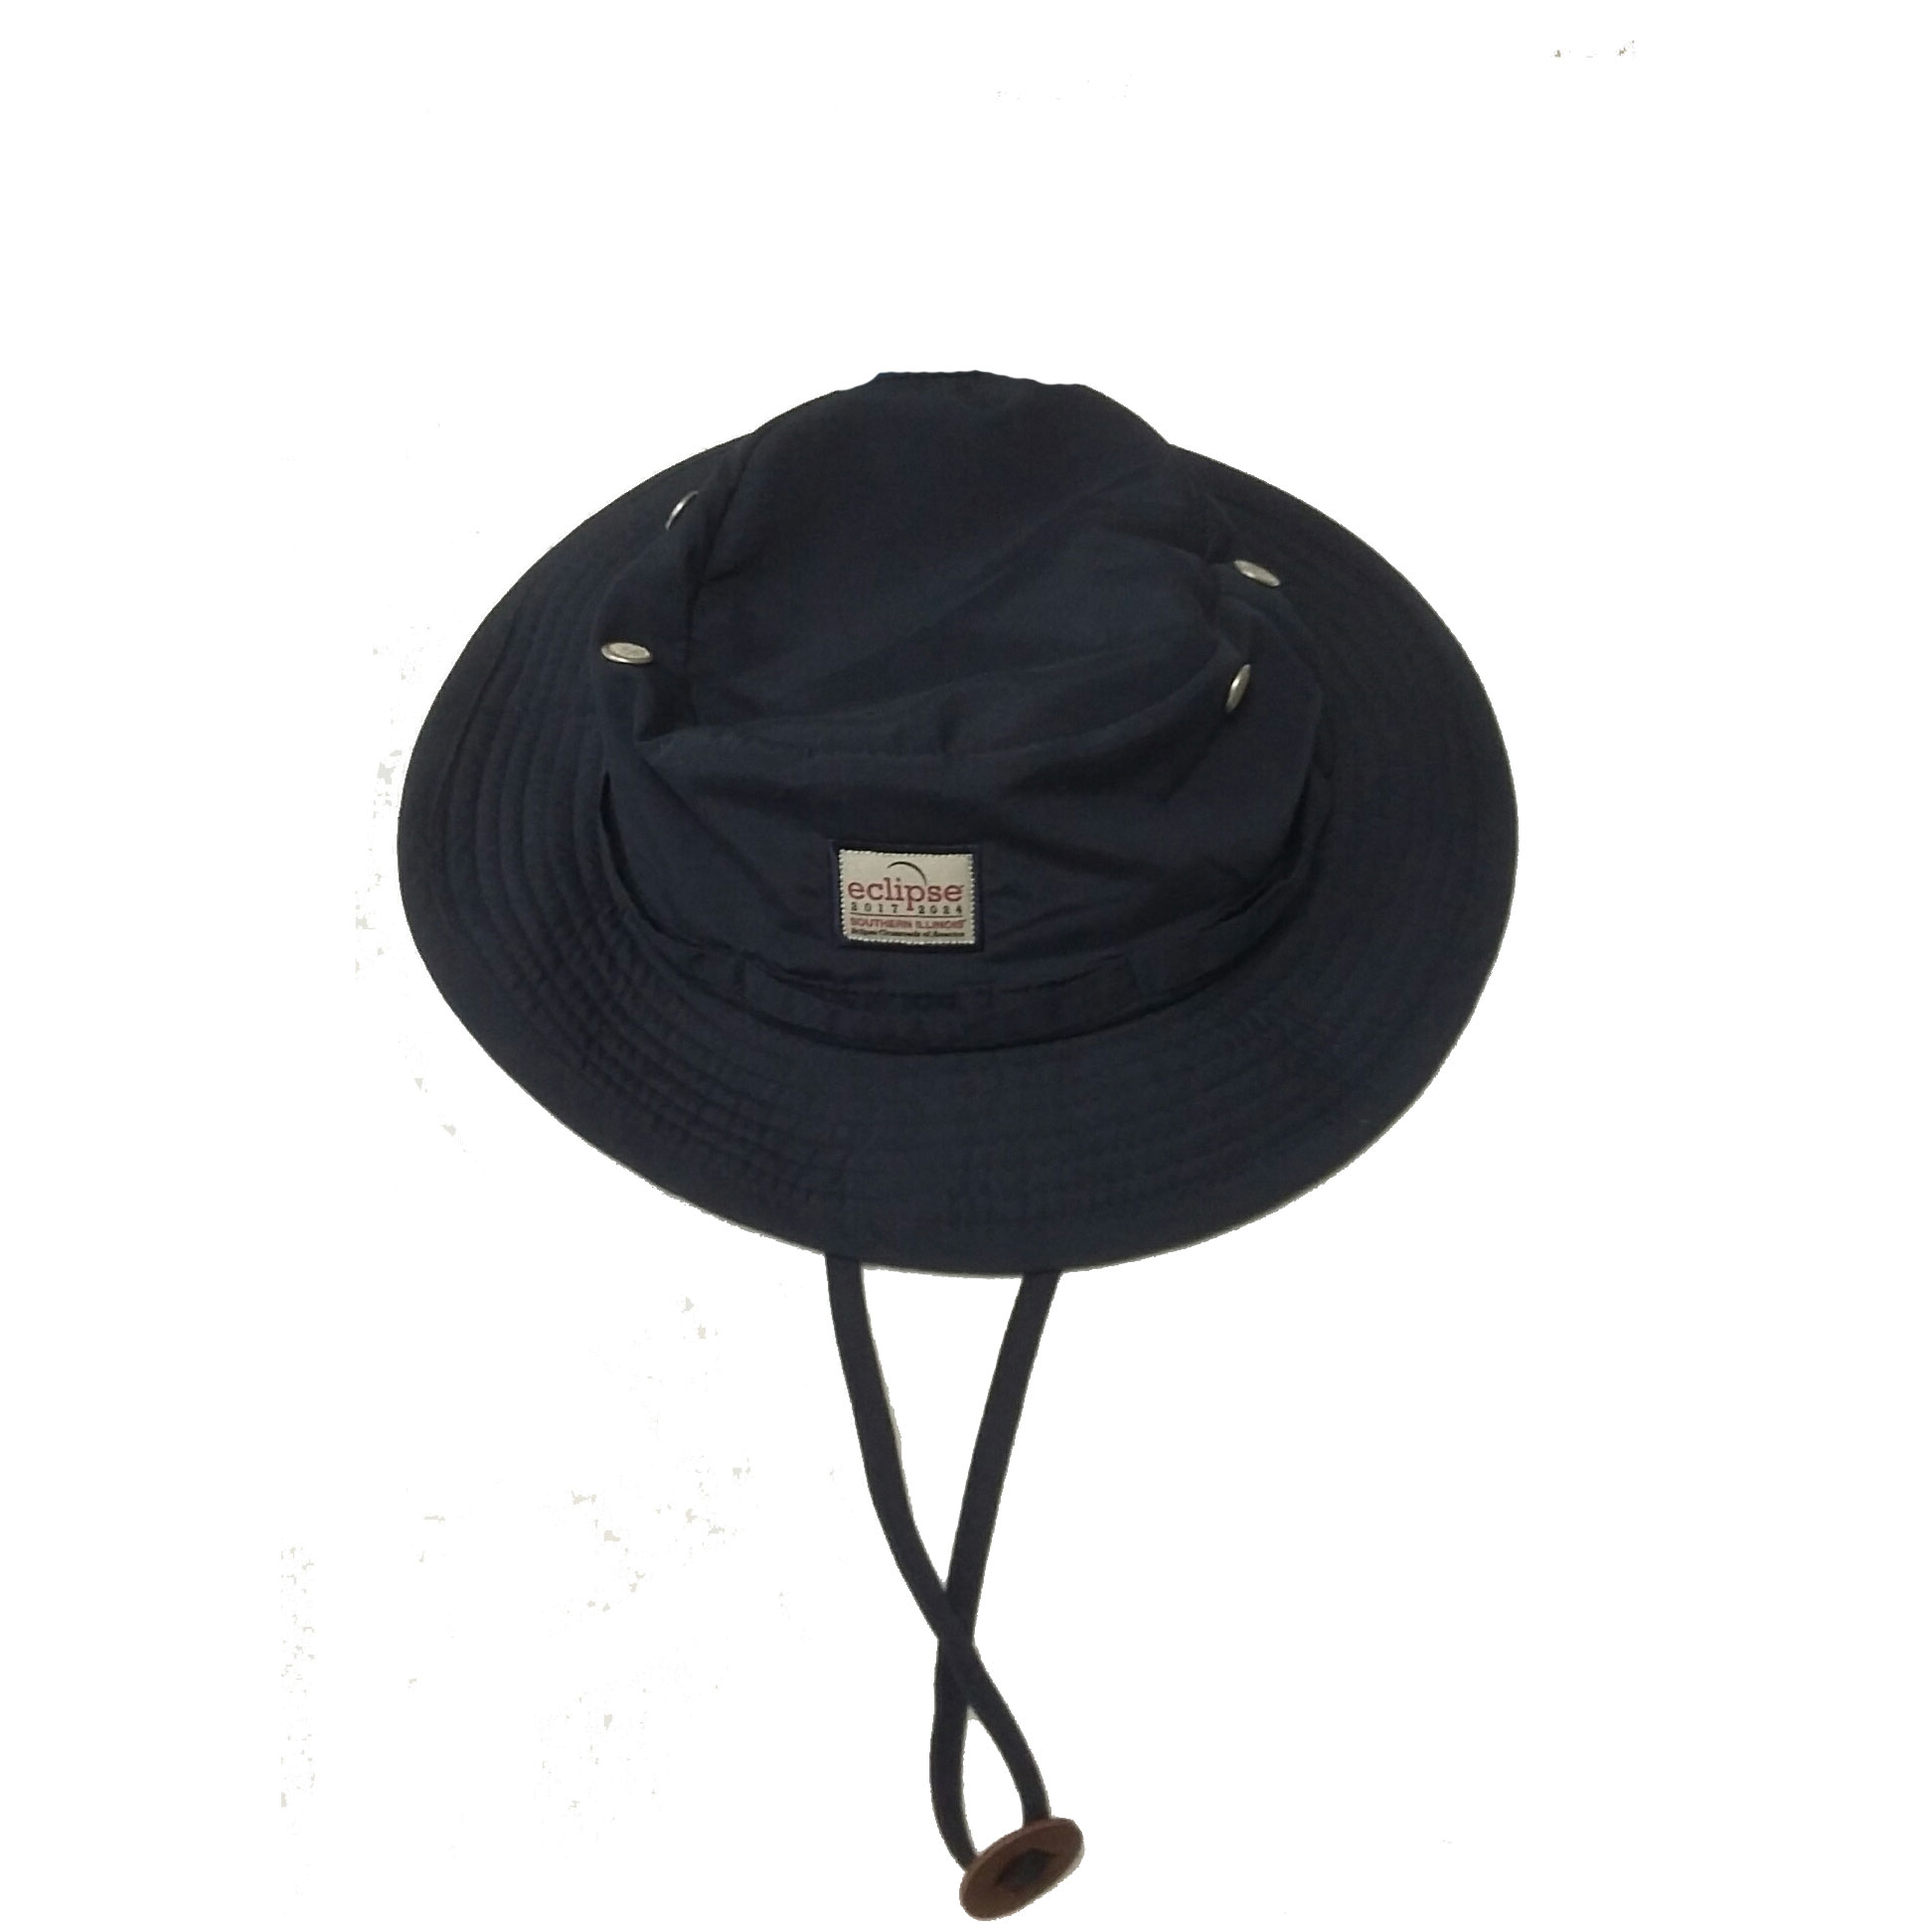 """Image for the ECLIPSE SIU OUTDOOR """"NO SUN"""" BUCKET/BOONIE HAT product"""